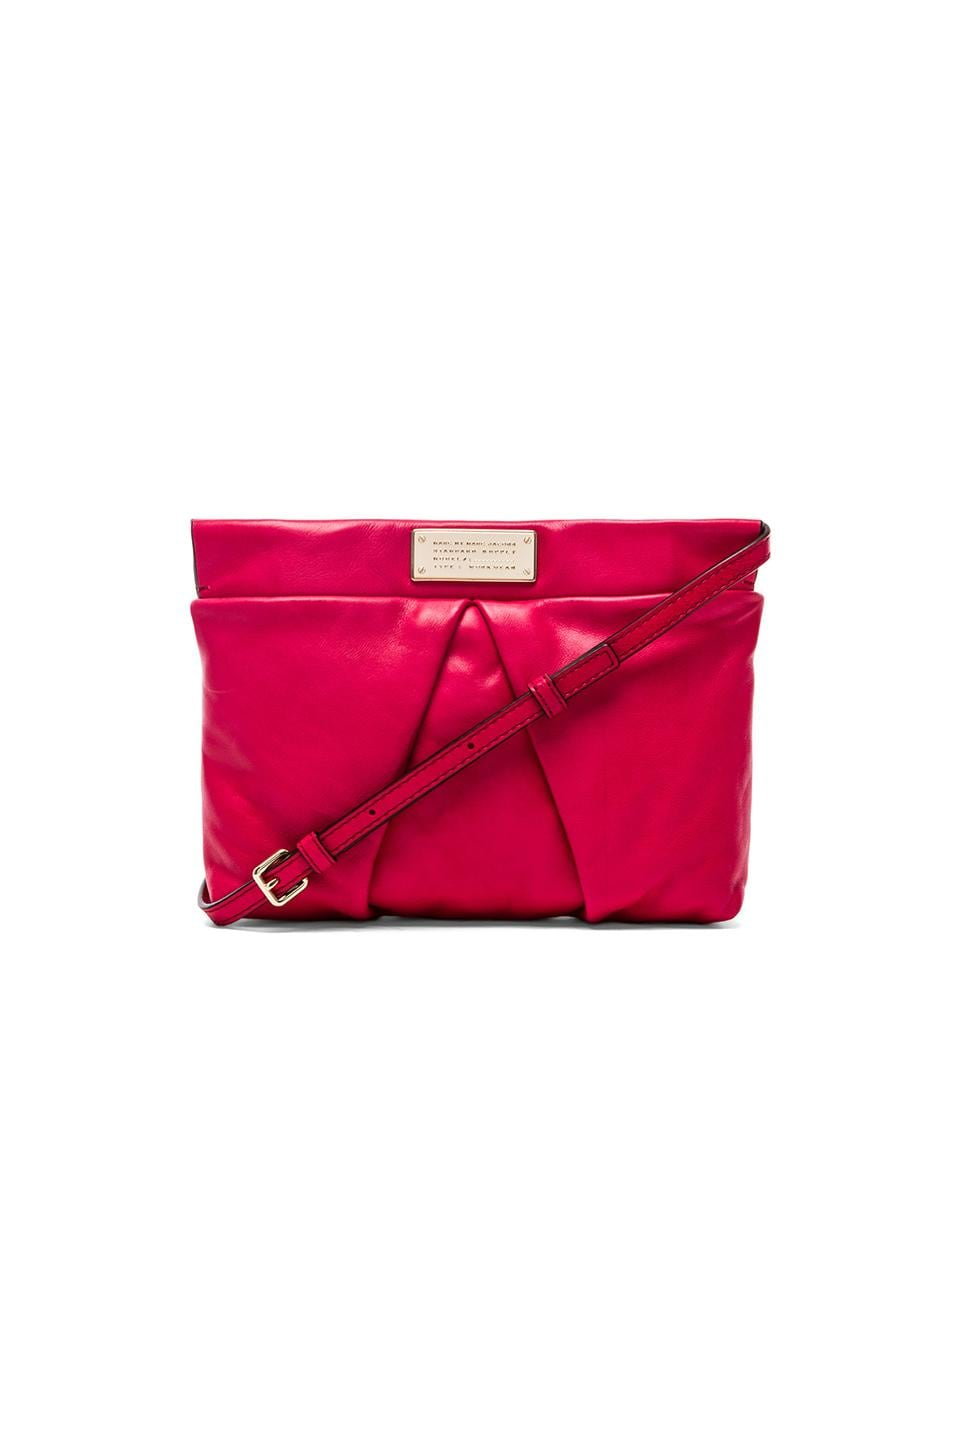 Marc by Marc Jacobs Percy Crossbody in Raspberries